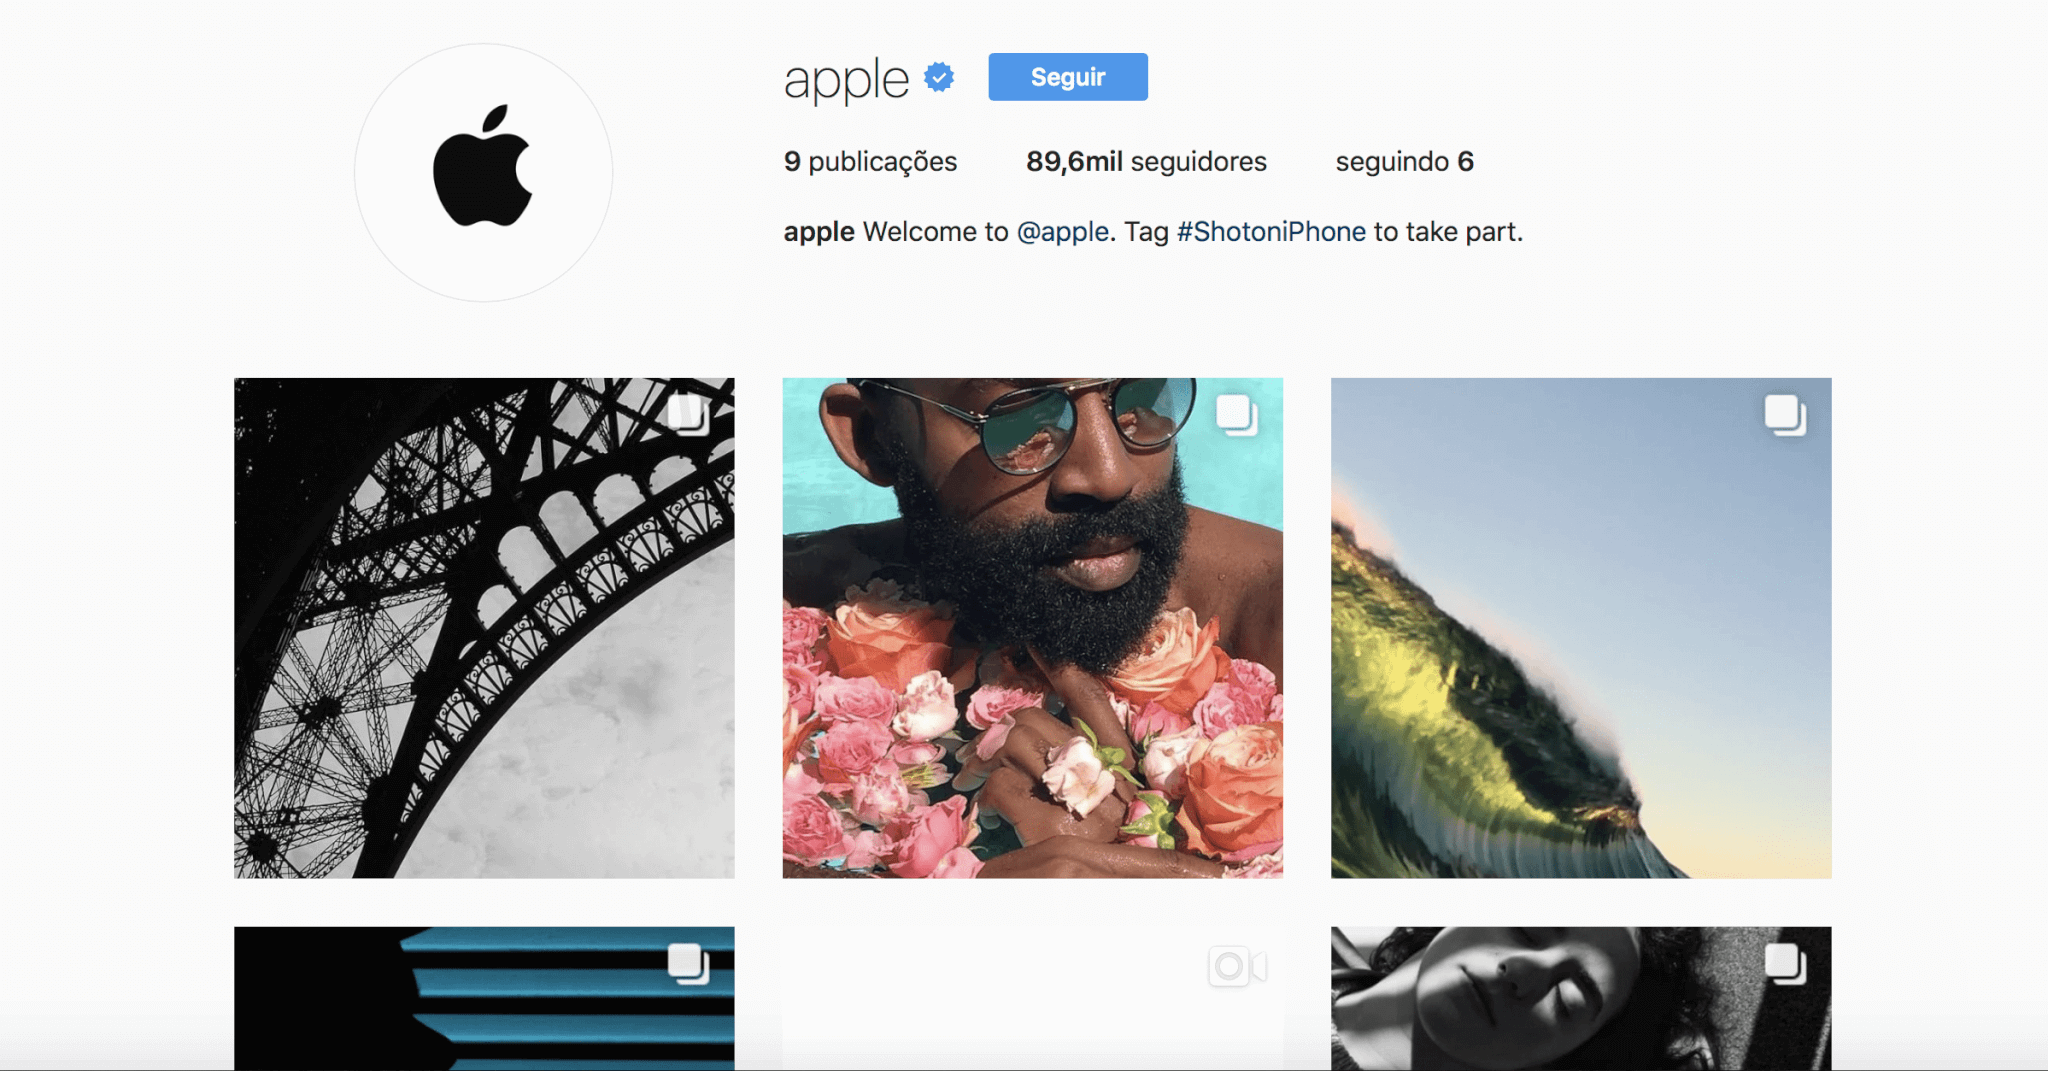 apple - Apple é a mais nova integrante do Instagram